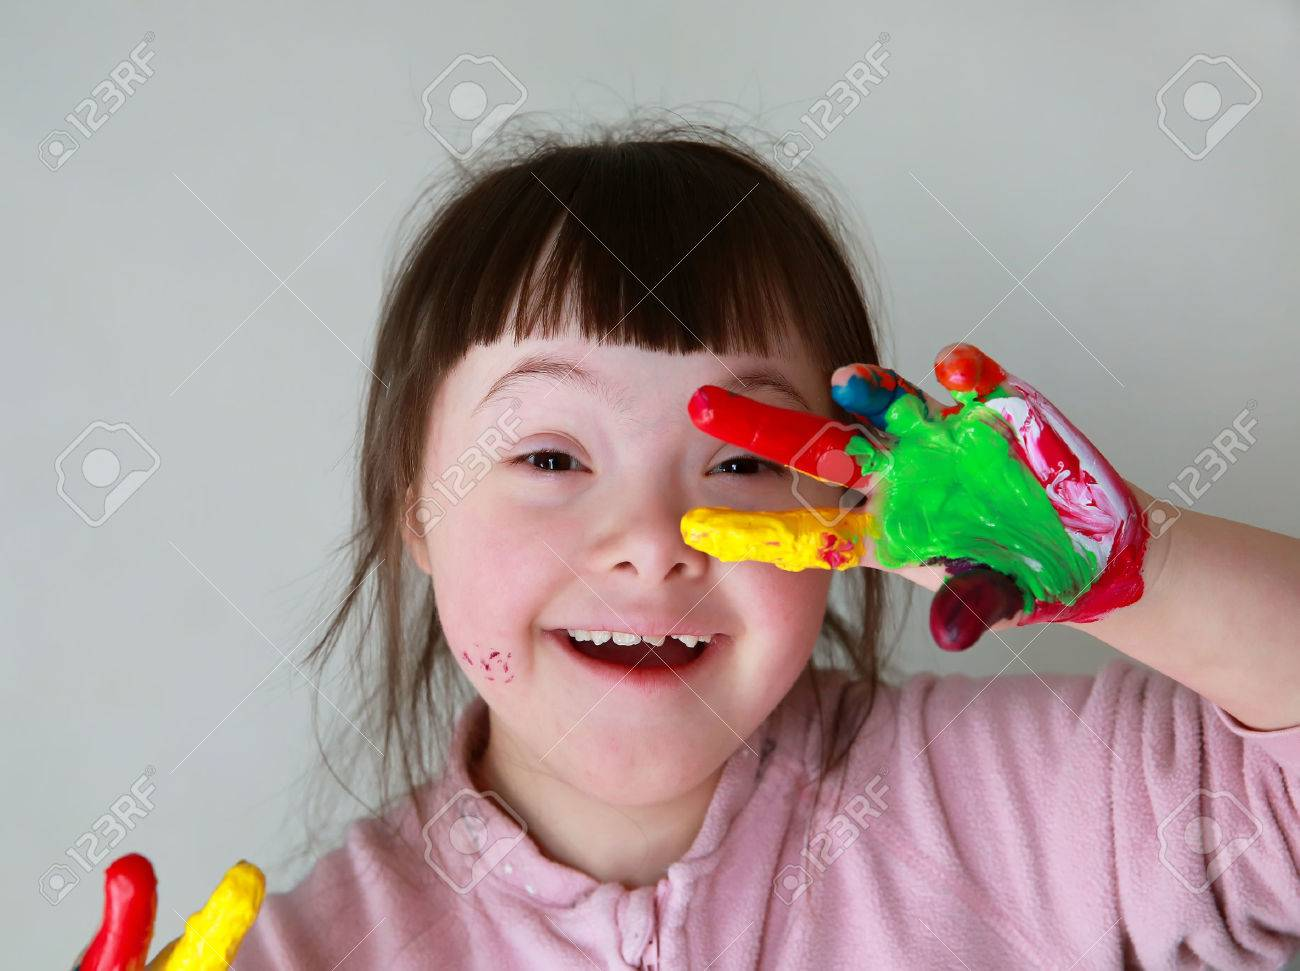 Cute little girl with painted hands. Isolated on grey background. Standard-Bild - 37612722